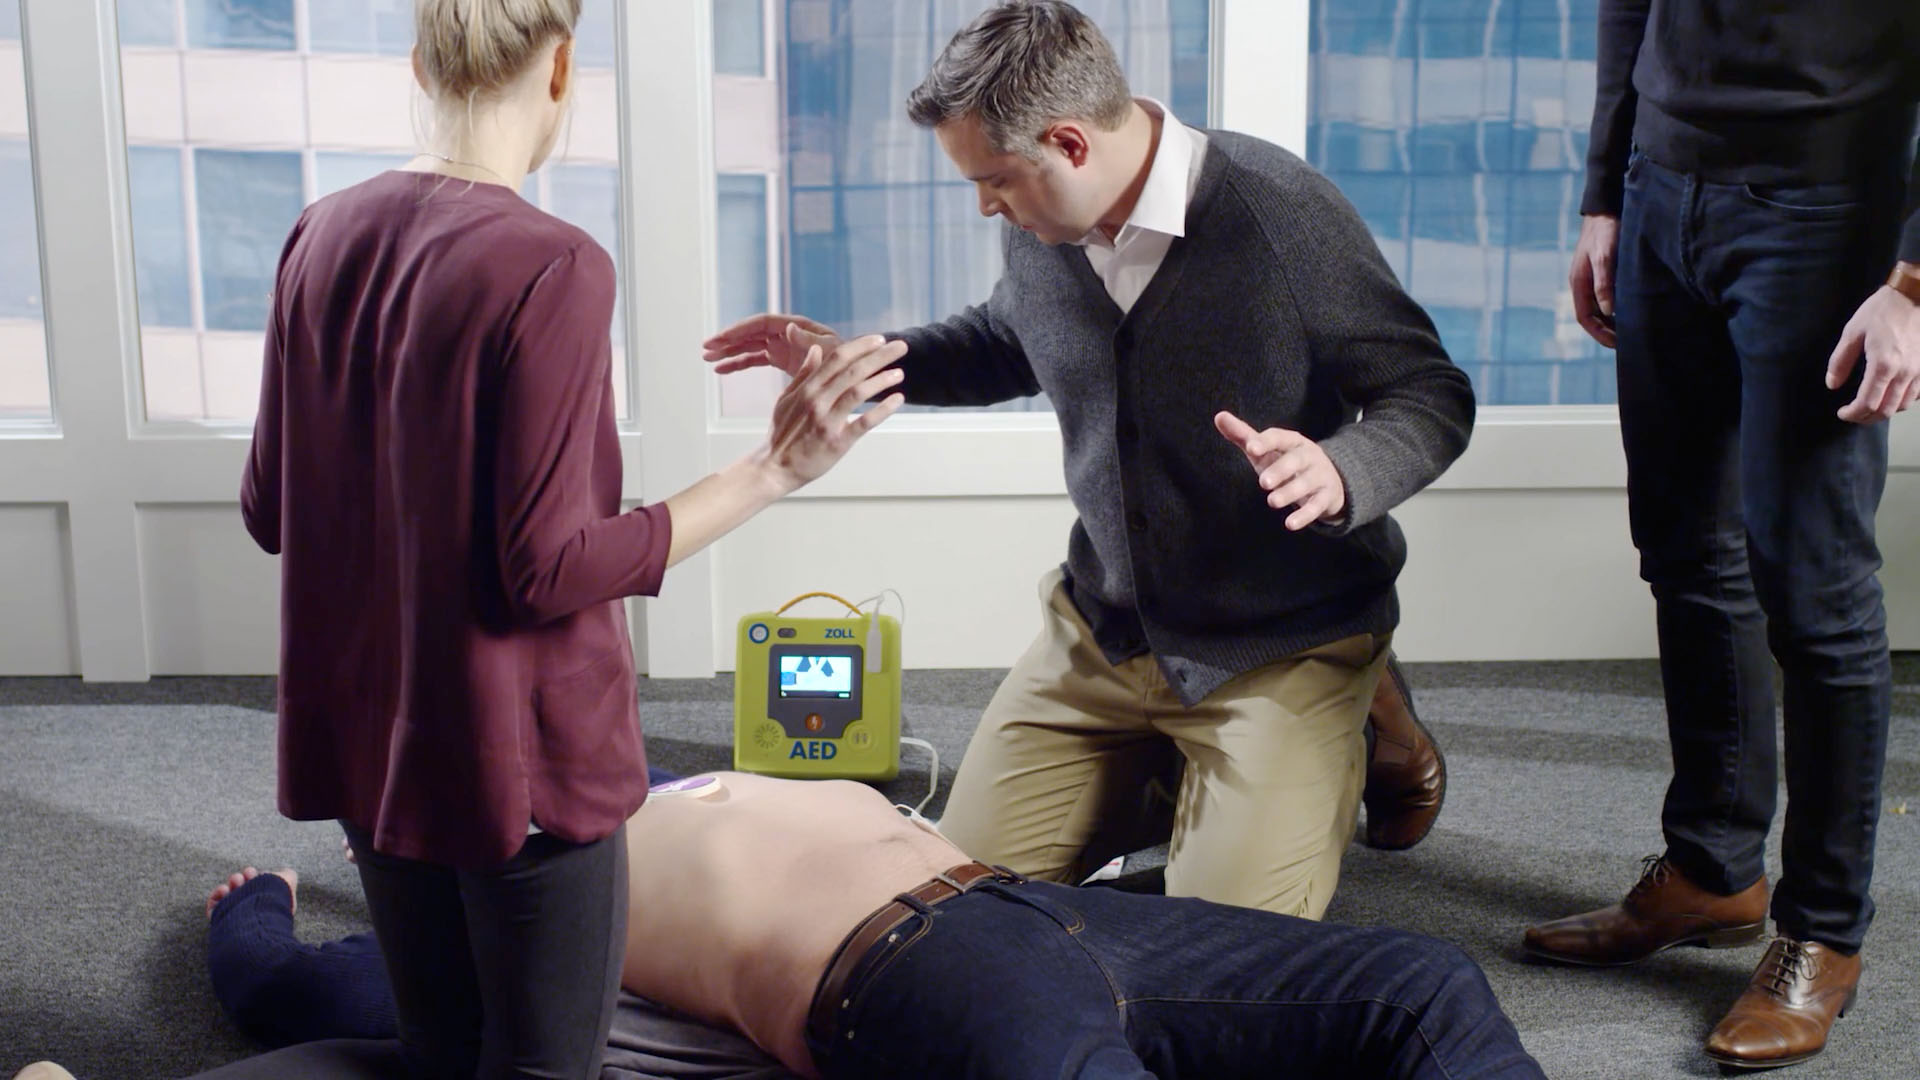 Co-workers standing over an employee who is experiencing cardiac arrest